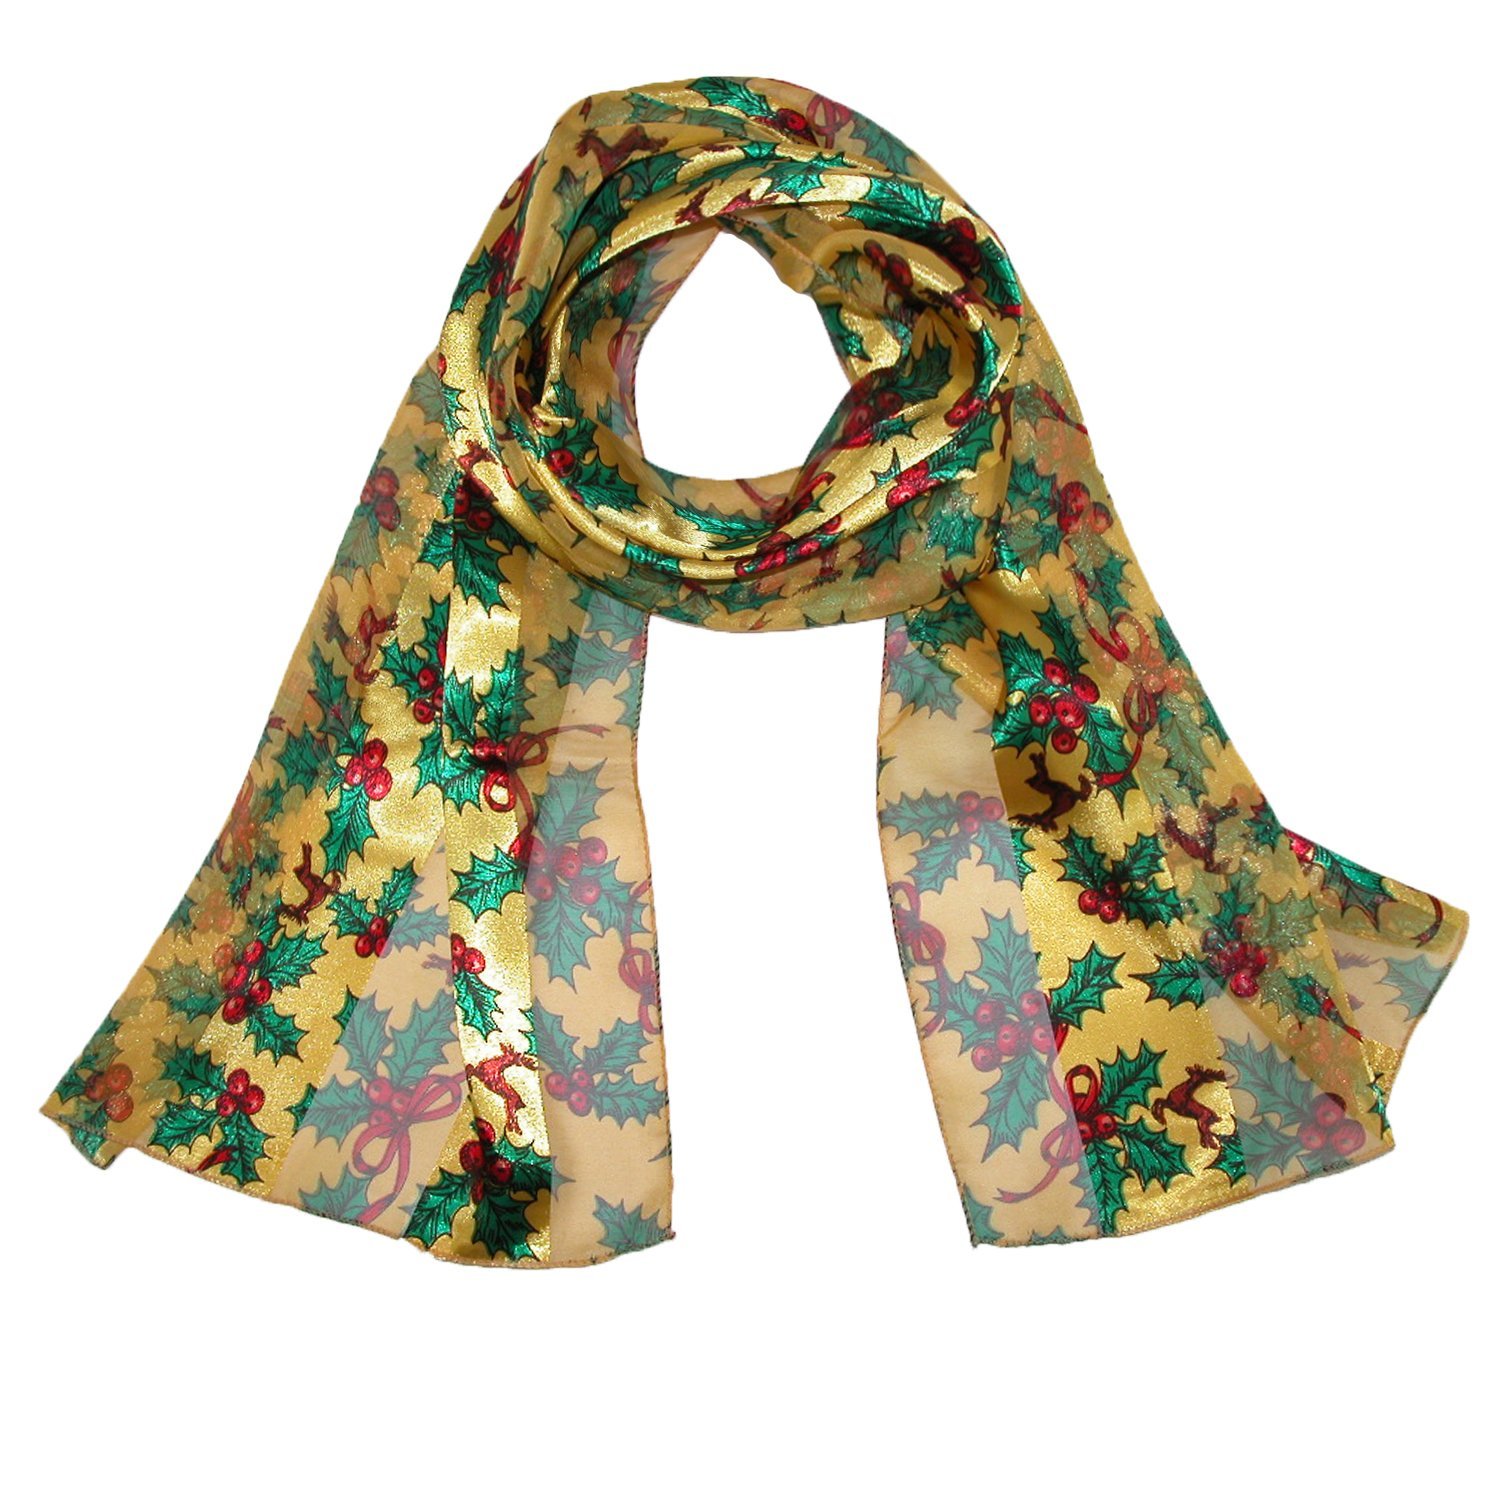 CTM Women's Long Satin Christmas Holiday Holly Leaves Scarf, Gold